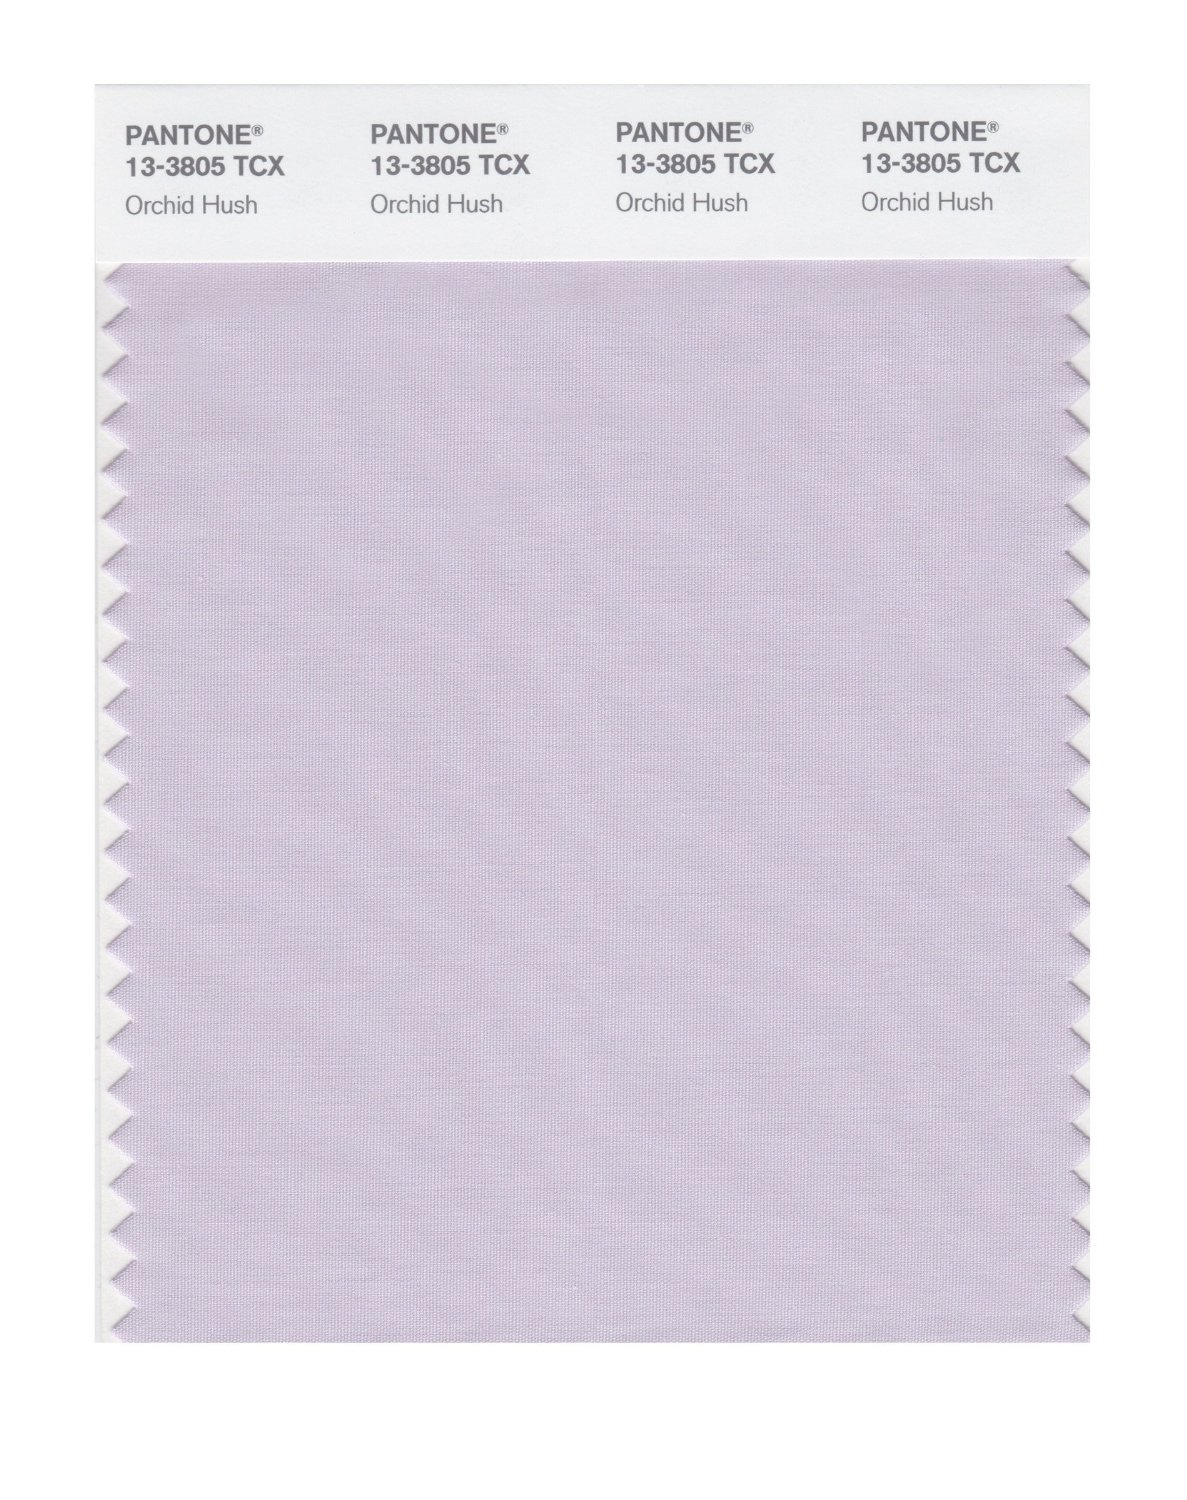 Pantone Smart Swatch 13-3805 Orchid Hush